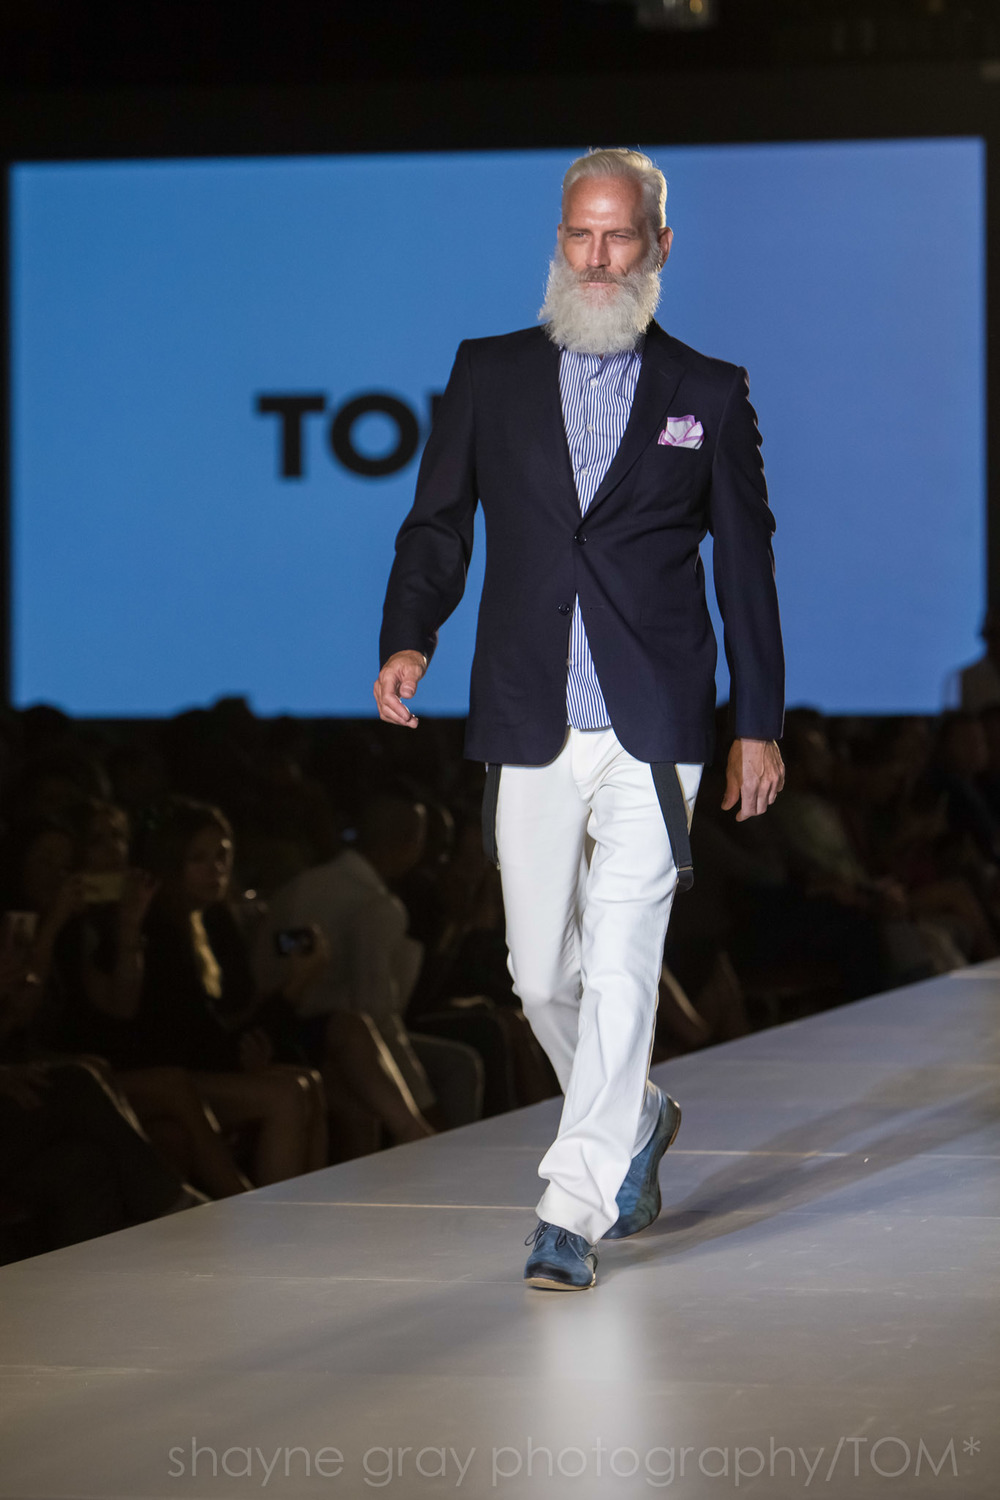 Shayne-Gray-Toronto-men's-fashion_week-TOM-christopher-bates-7290.jpg